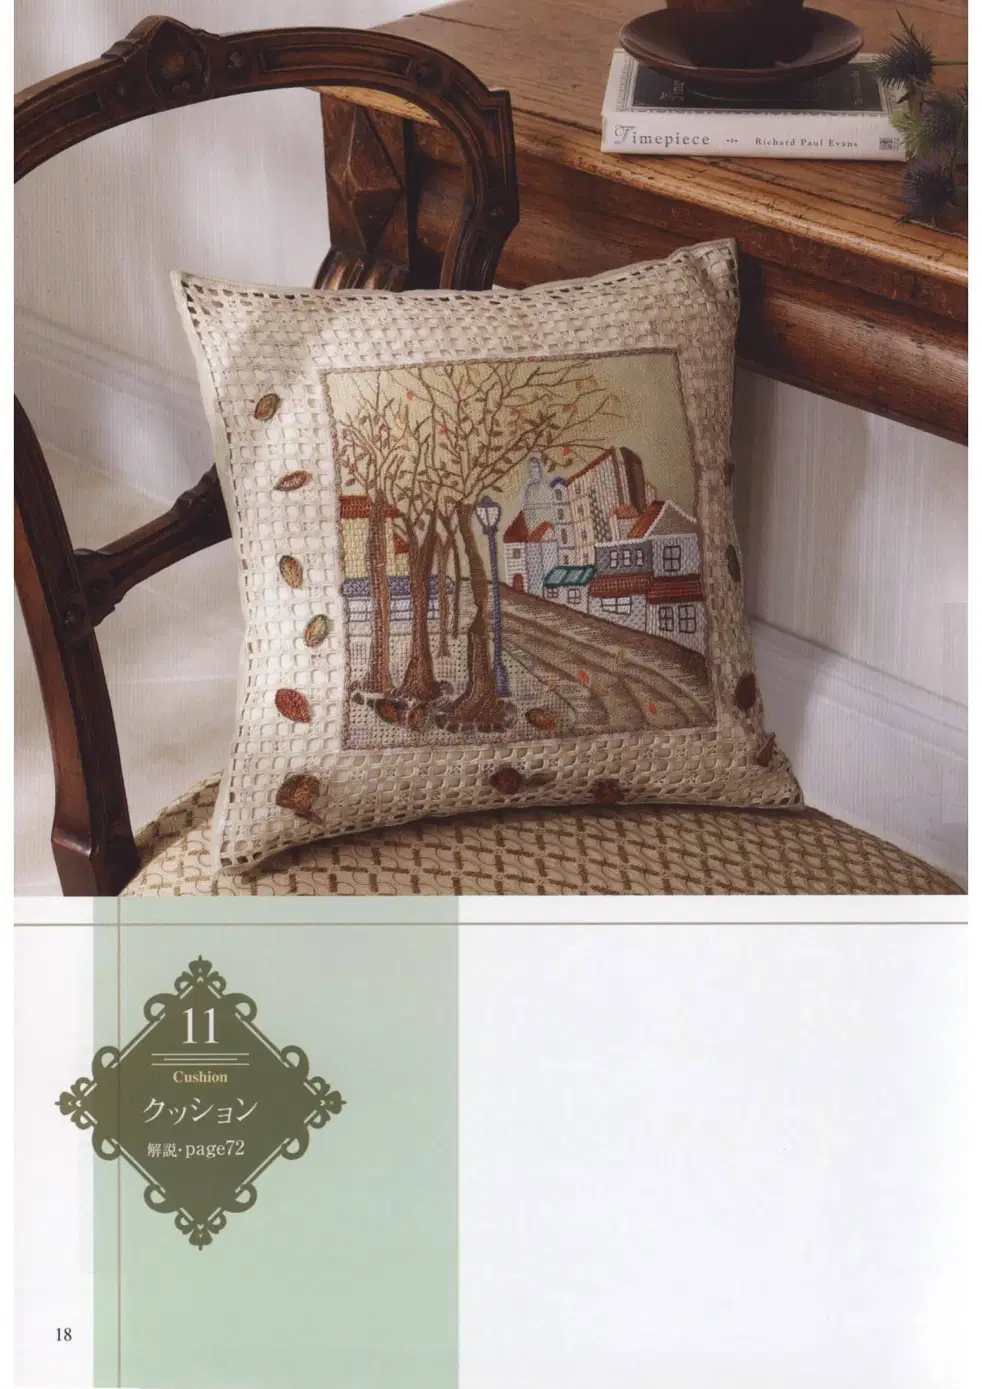 Landscape embroidery pillow: different type of embroidery stitches